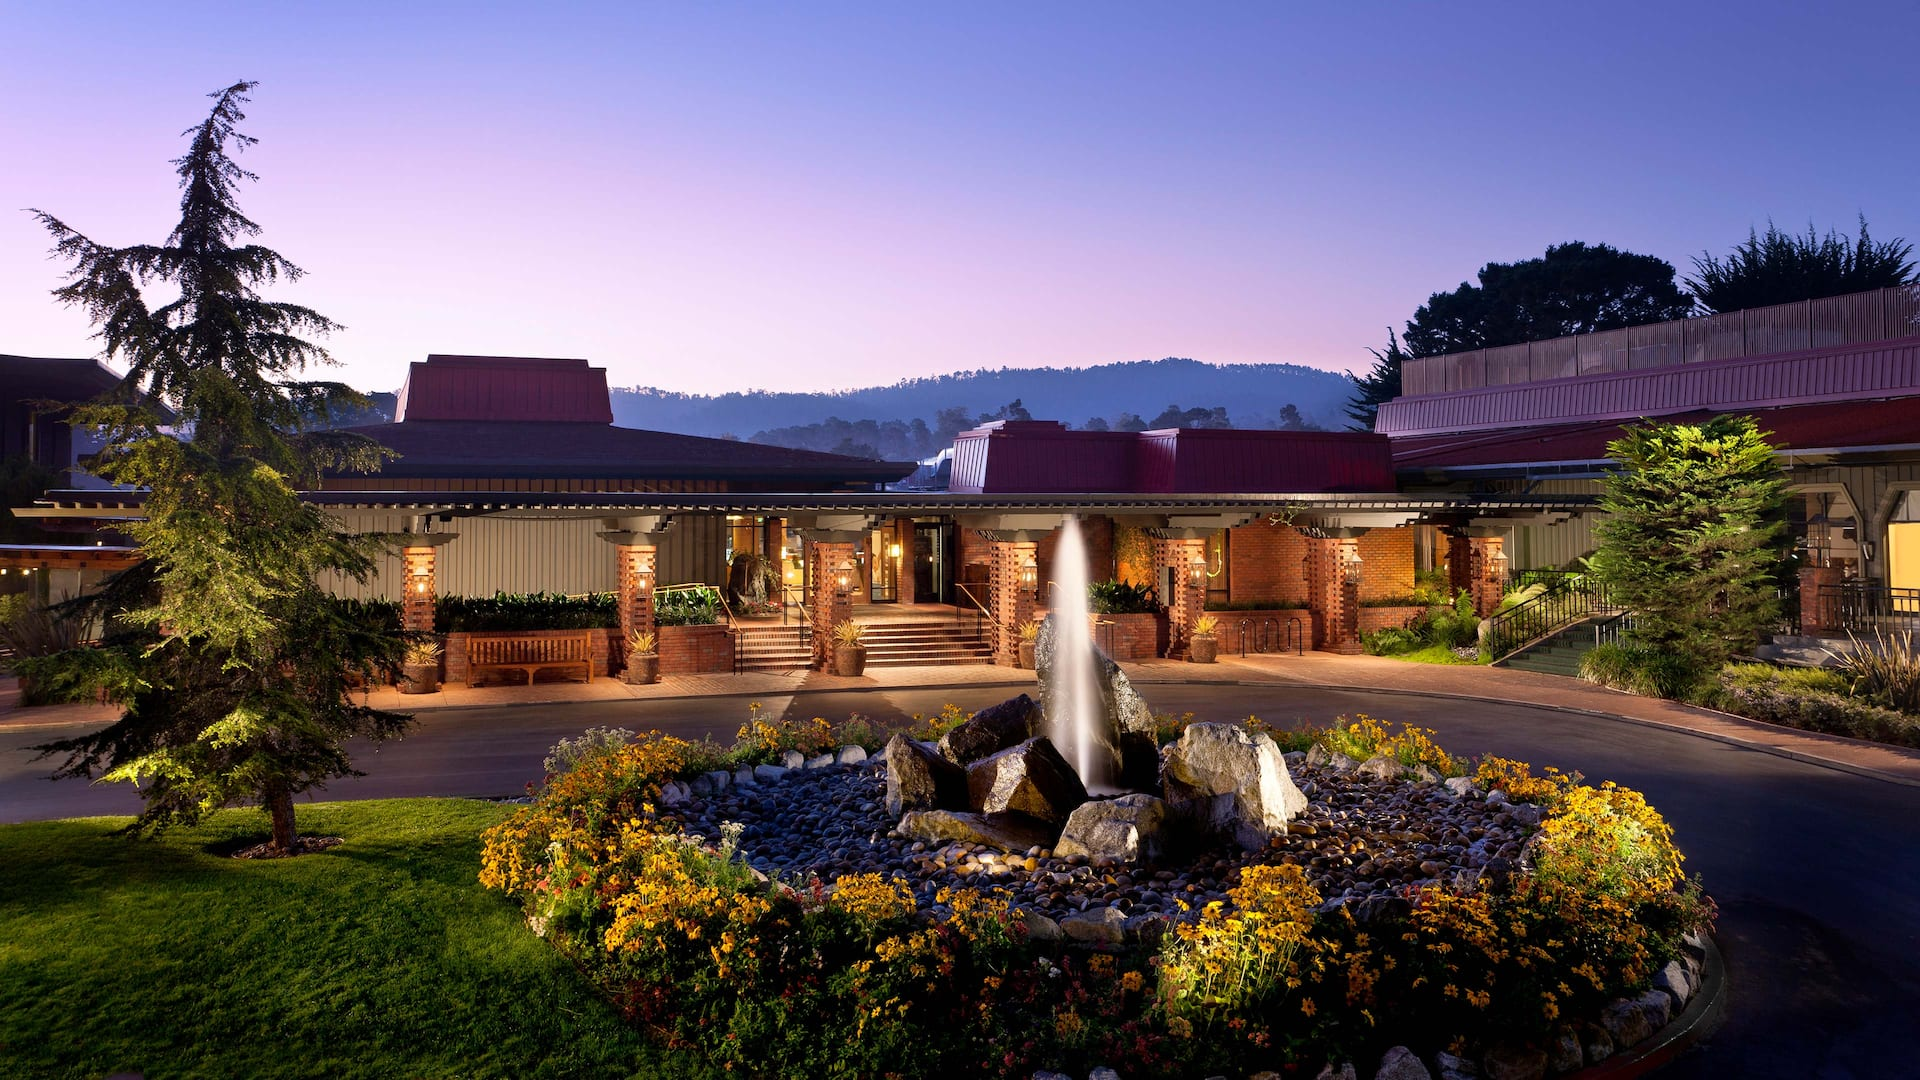 Hyatt Regency Monterey Hotel & Spa